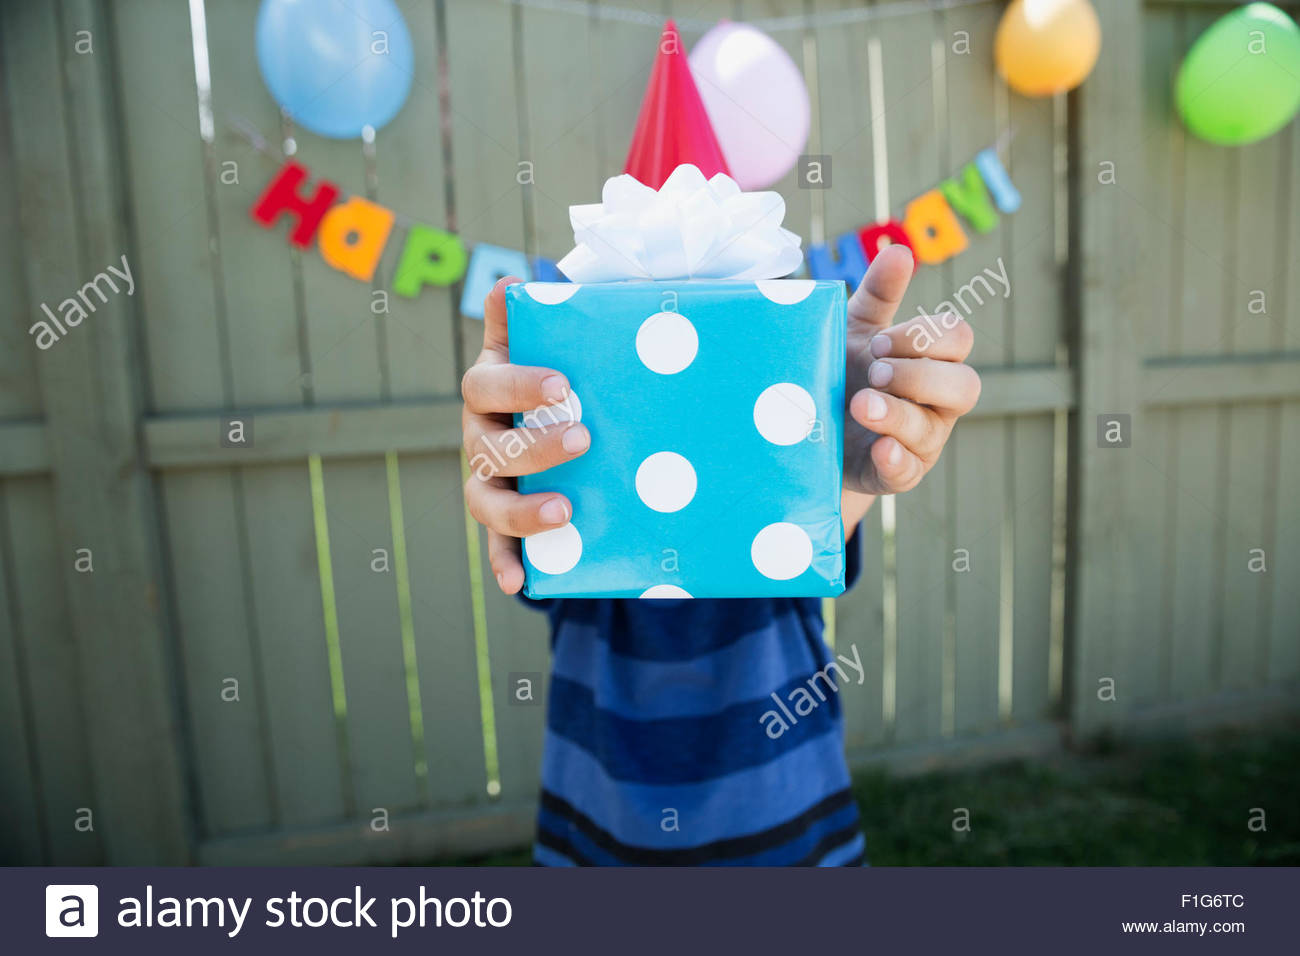 Boy holding polka-dot wrapped birthday gift - Stock Image